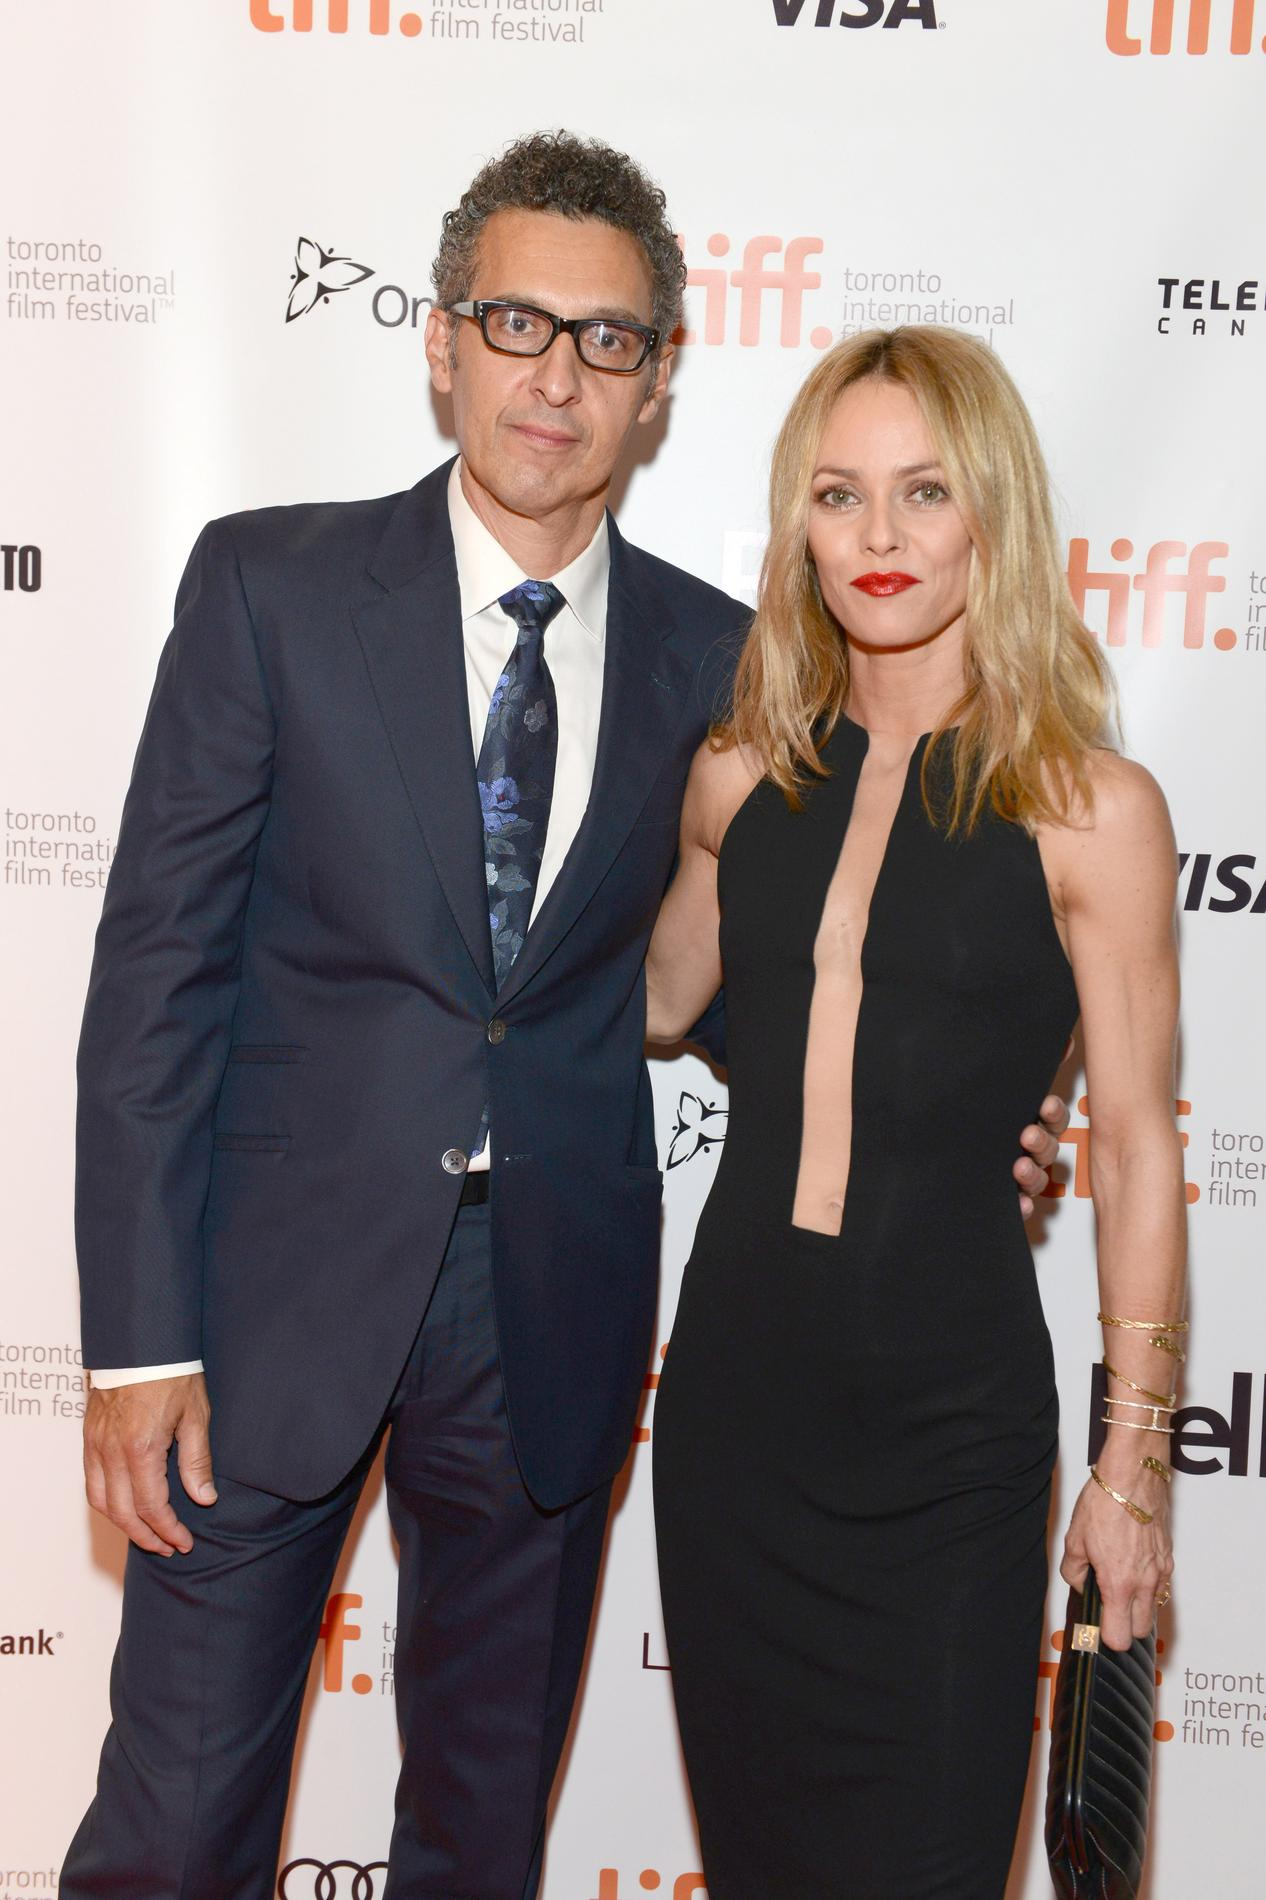 vanessa paradis serait en couple avec samuel benchetrit madame figaro. Black Bedroom Furniture Sets. Home Design Ideas